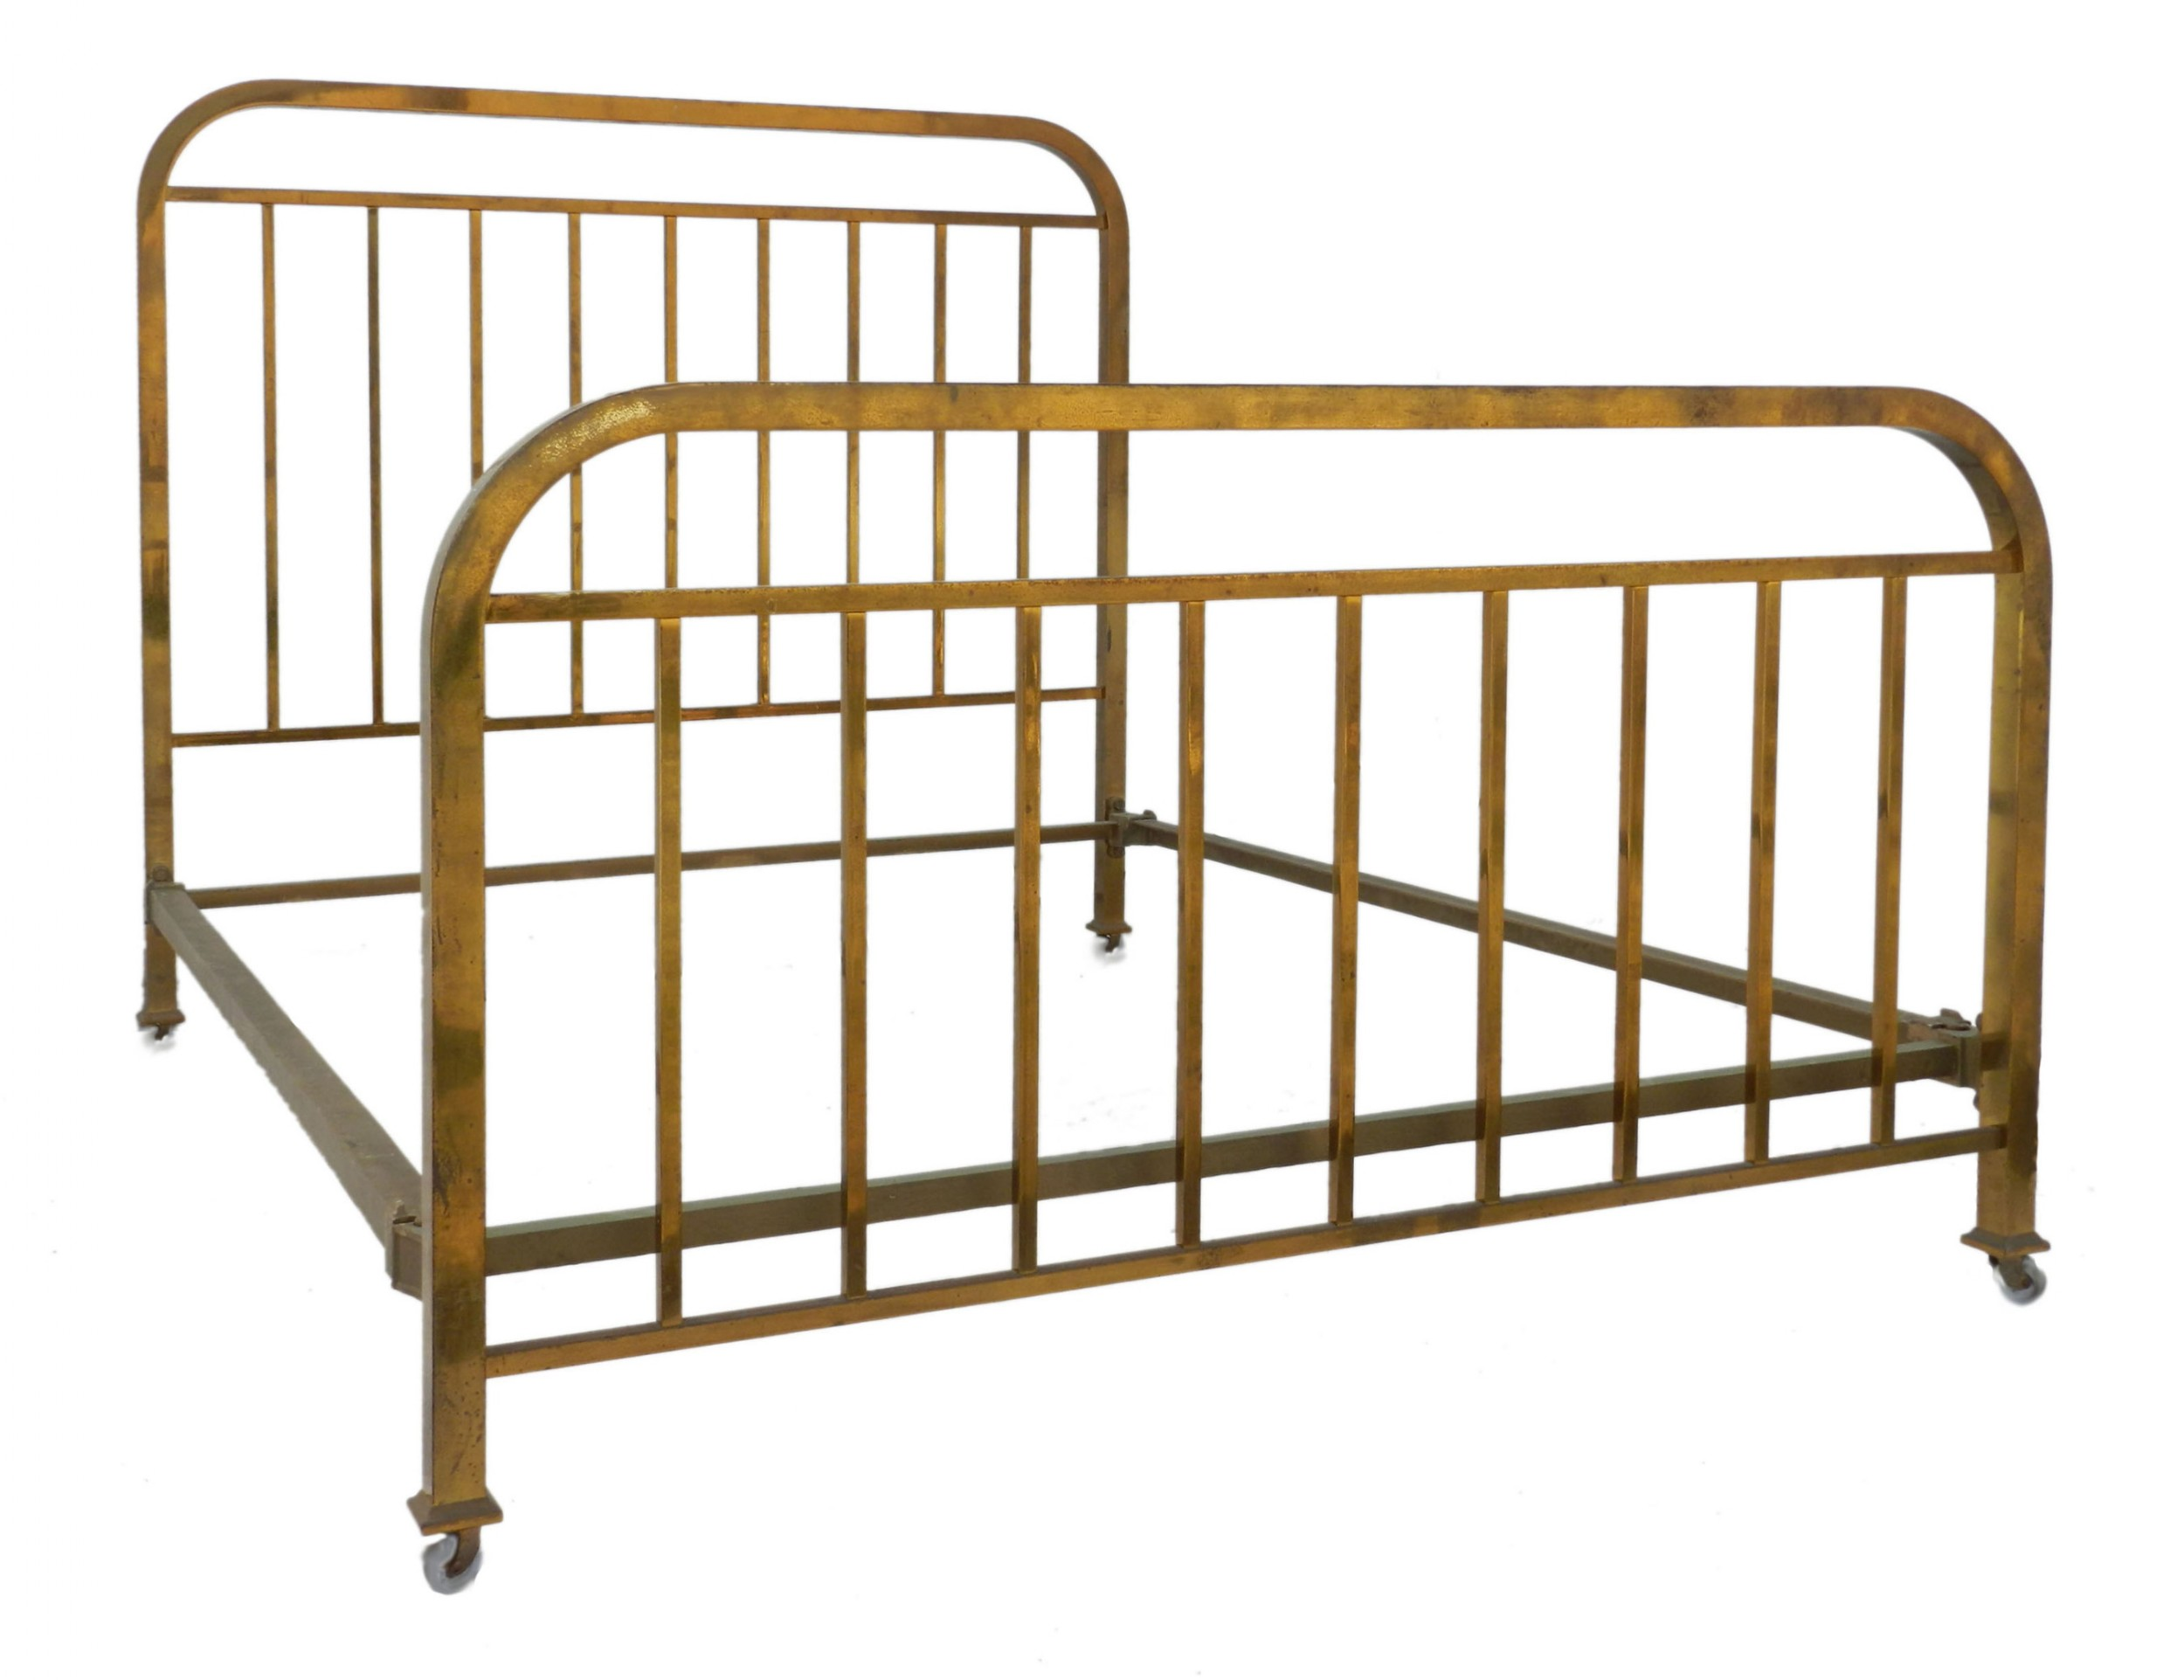 art deco brass bed uk king us queen size french c1930